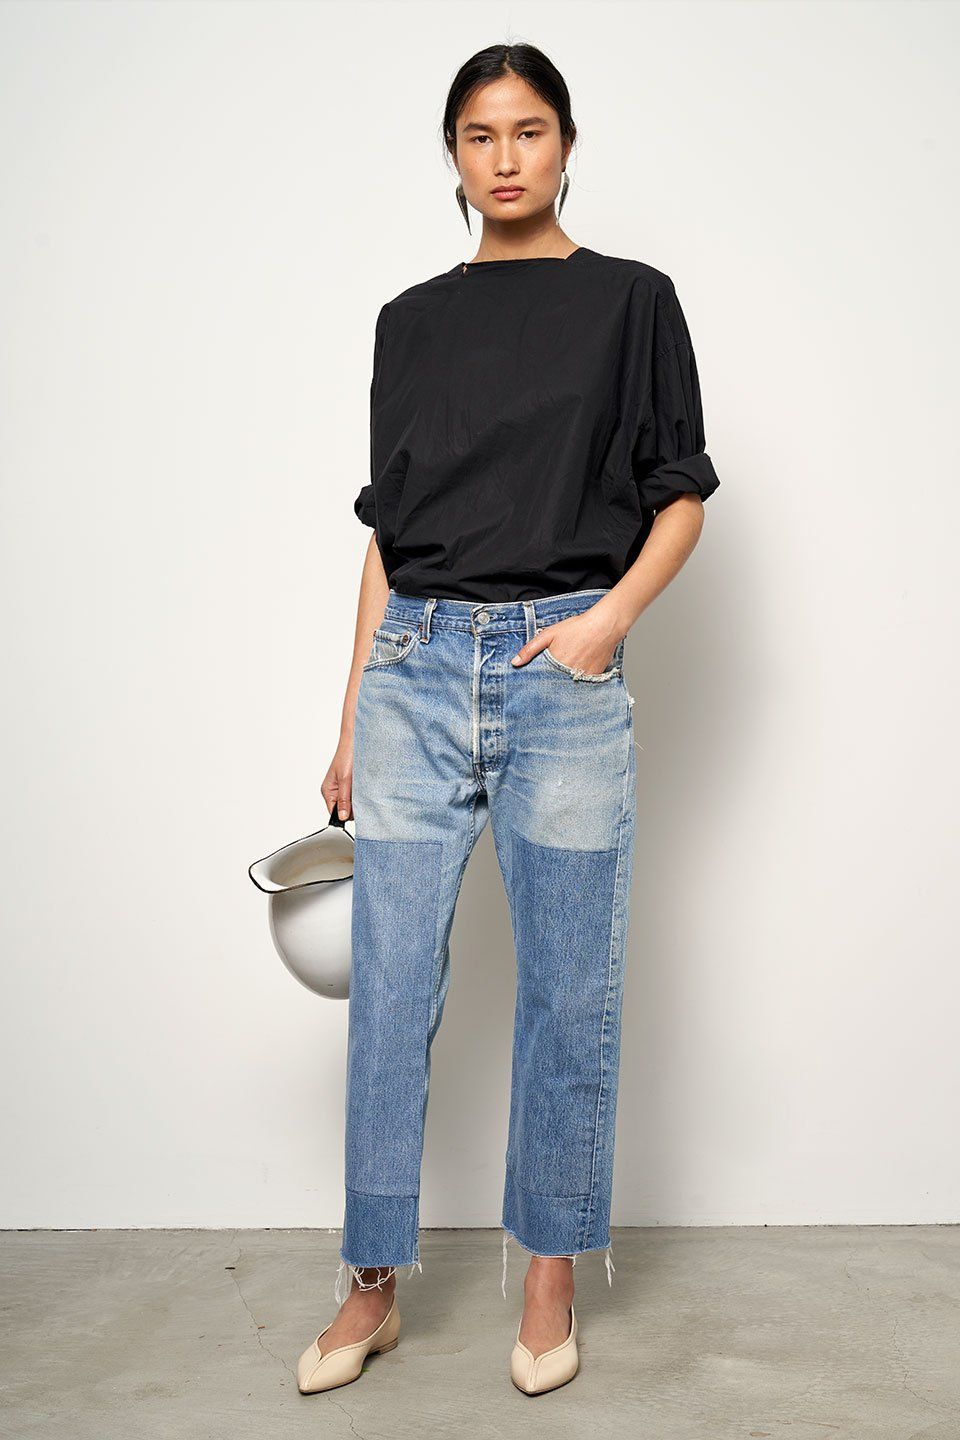 Denim Brands Predict Their Sellout Styles forSpring